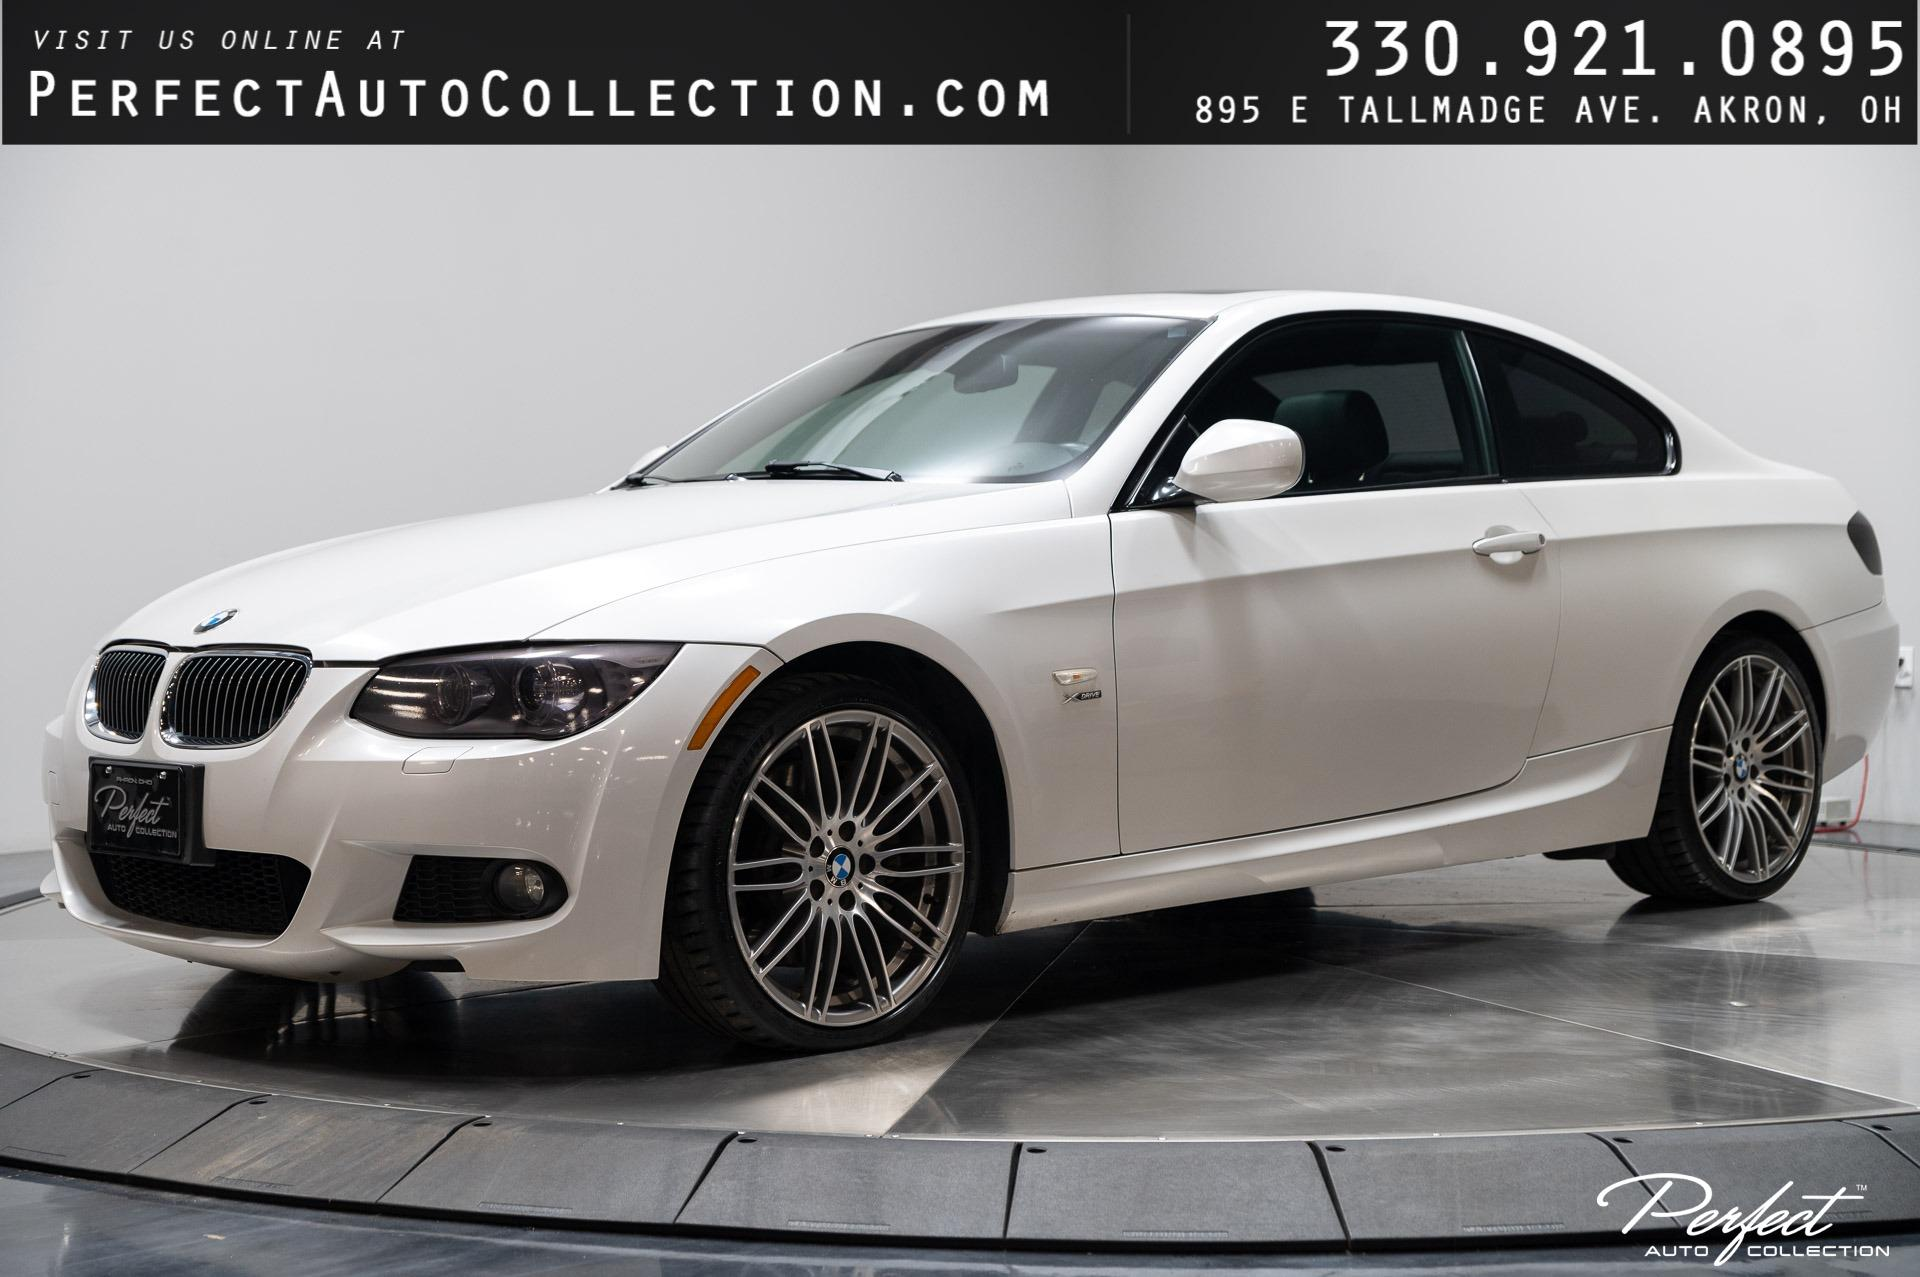 Used 2011 BMW 3 Series 335i xDrive for sale $16,895 at Perfect Auto Collection in Akron OH 44310 1